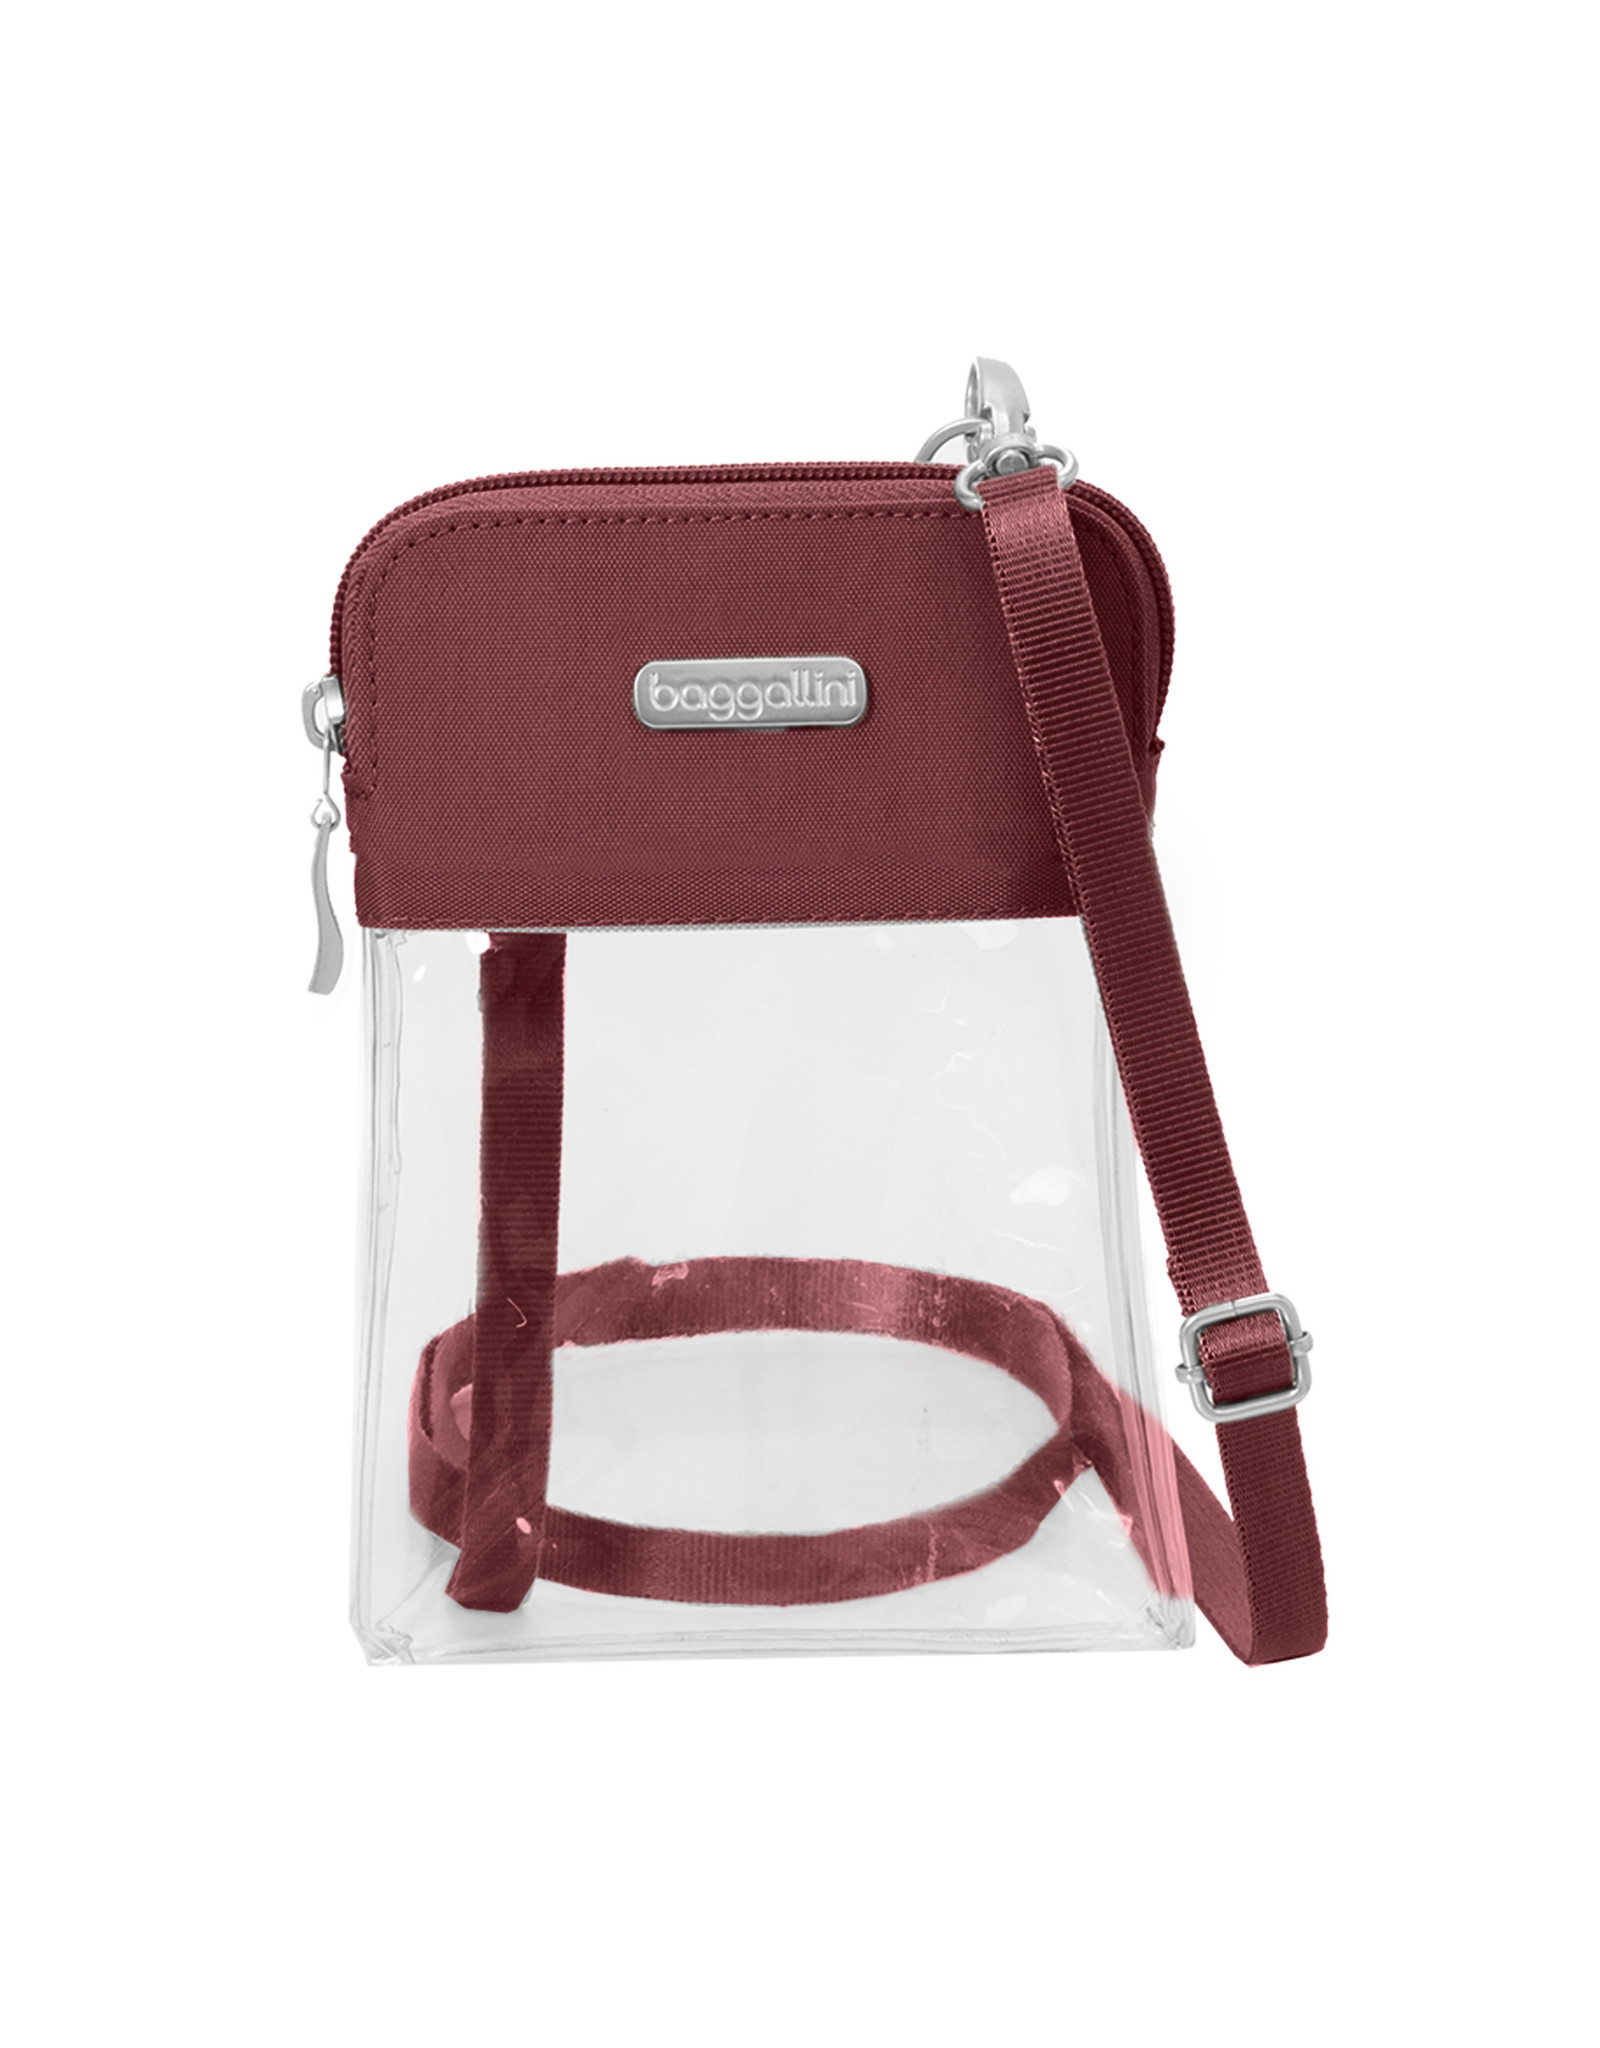 Baggallini Clear Event Compliant Bryant Crossbody - Deep Red